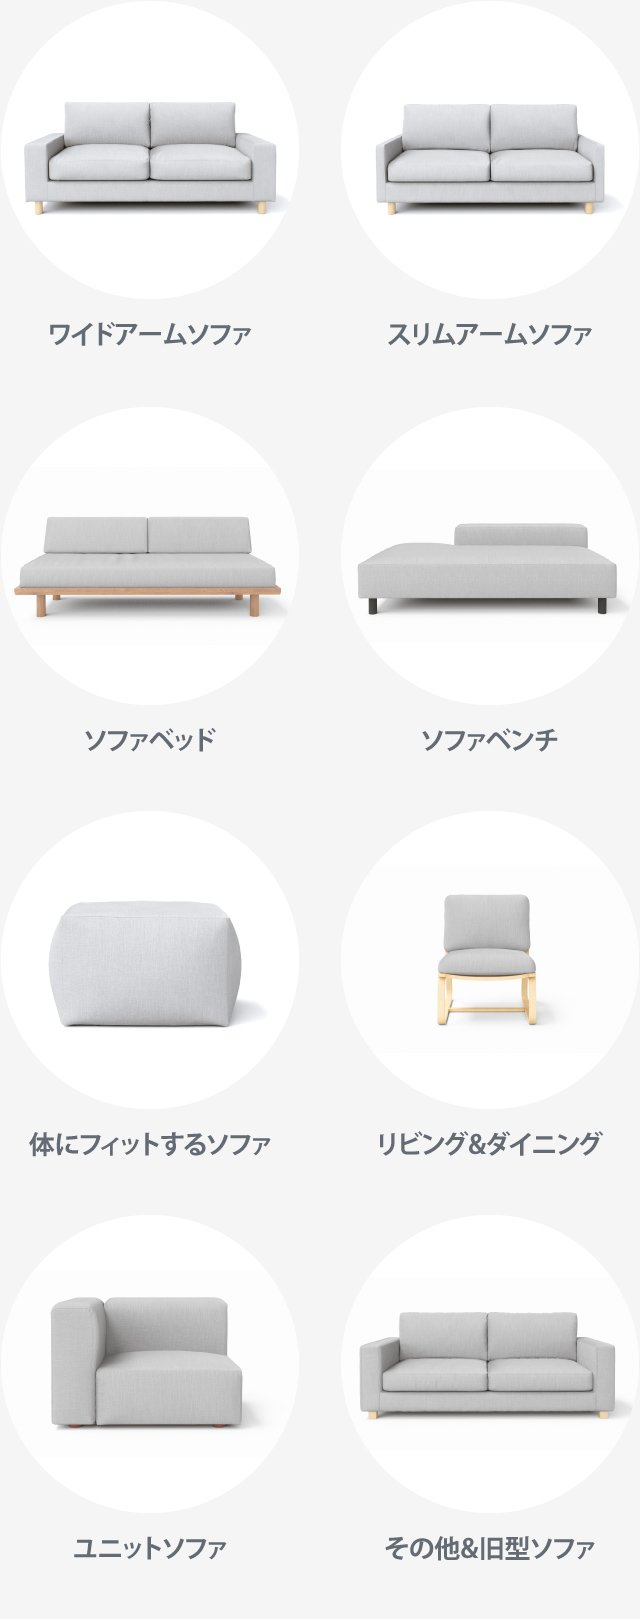 Comfort Works Muji Sofa Covers Models